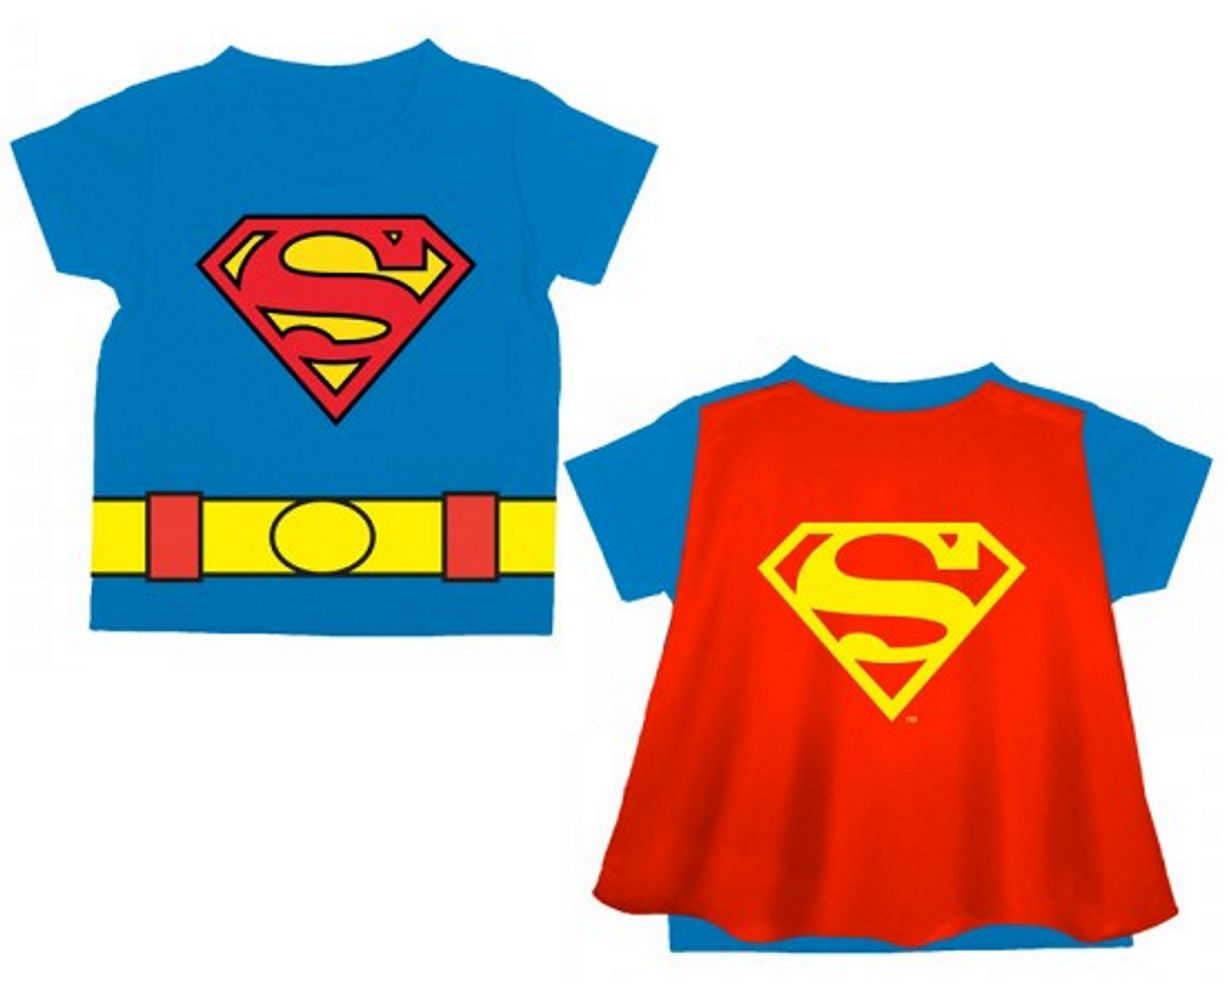 Free superman dress cliparts. Costume clipart superhero outfit